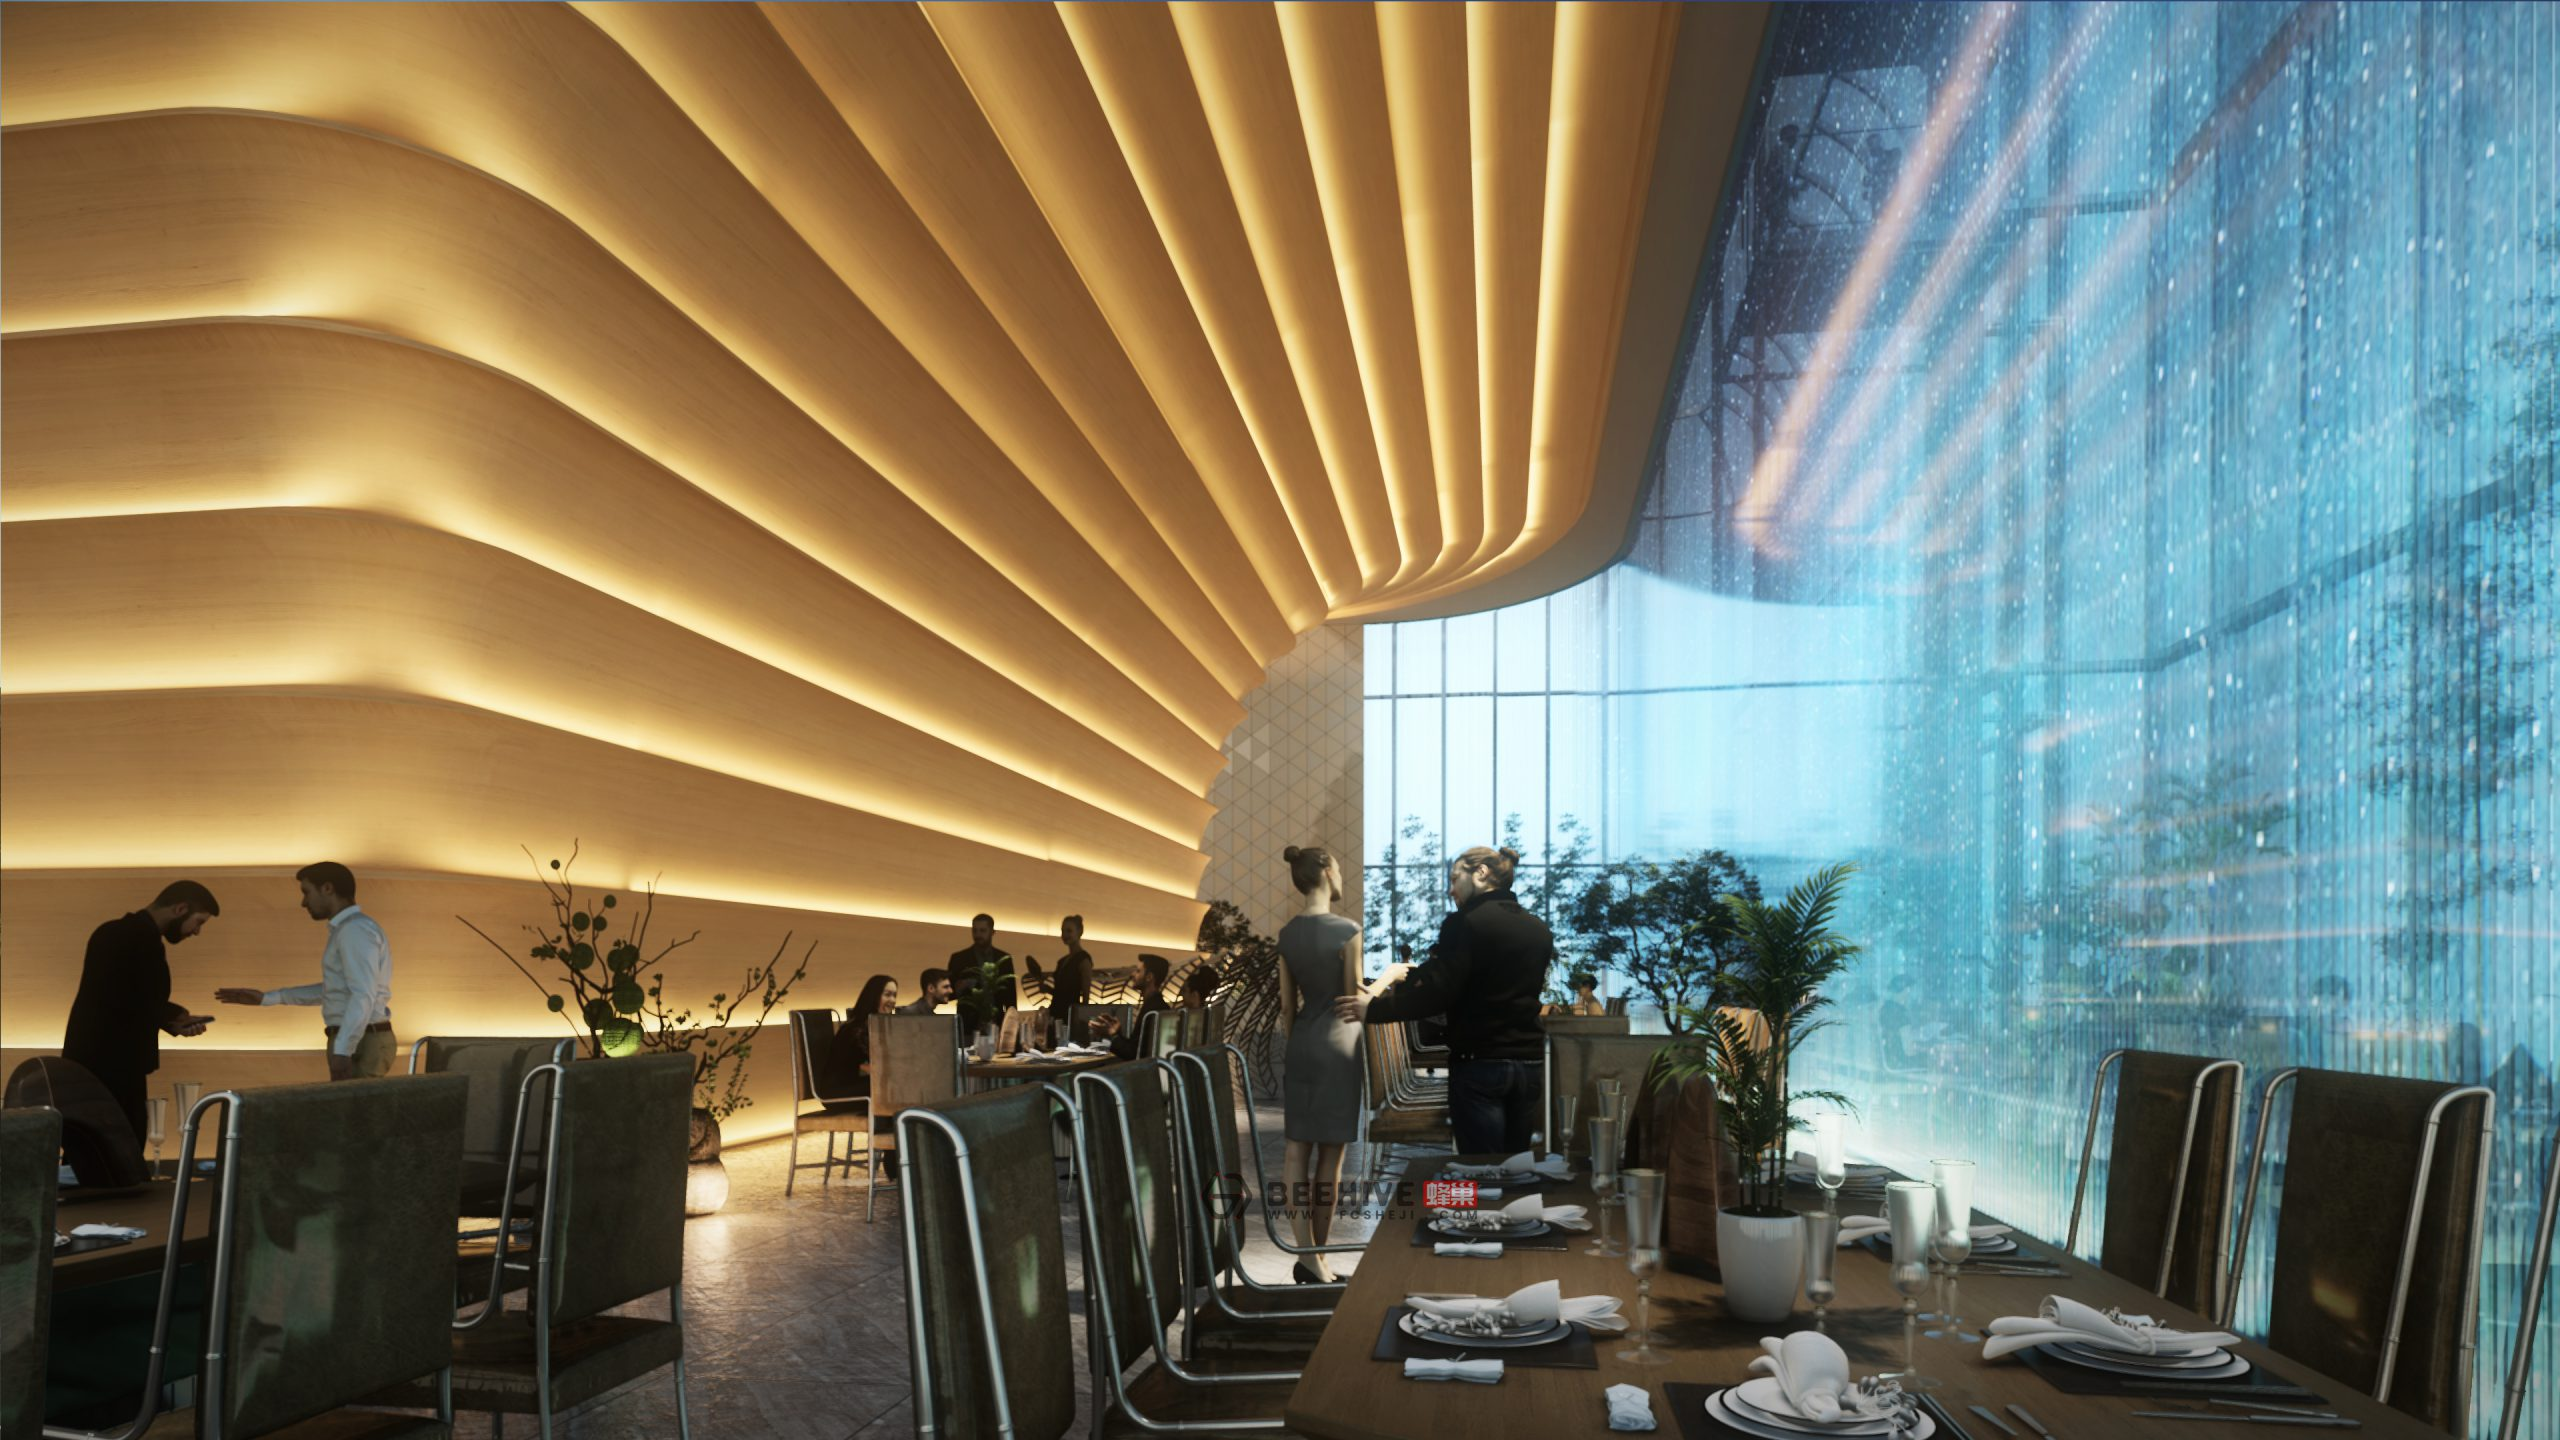 Nanjing Xin Jie Kou Suning Plaza. Design and Project Architect: Aedas. Client: Suning Real Estate Group CO., LTD.